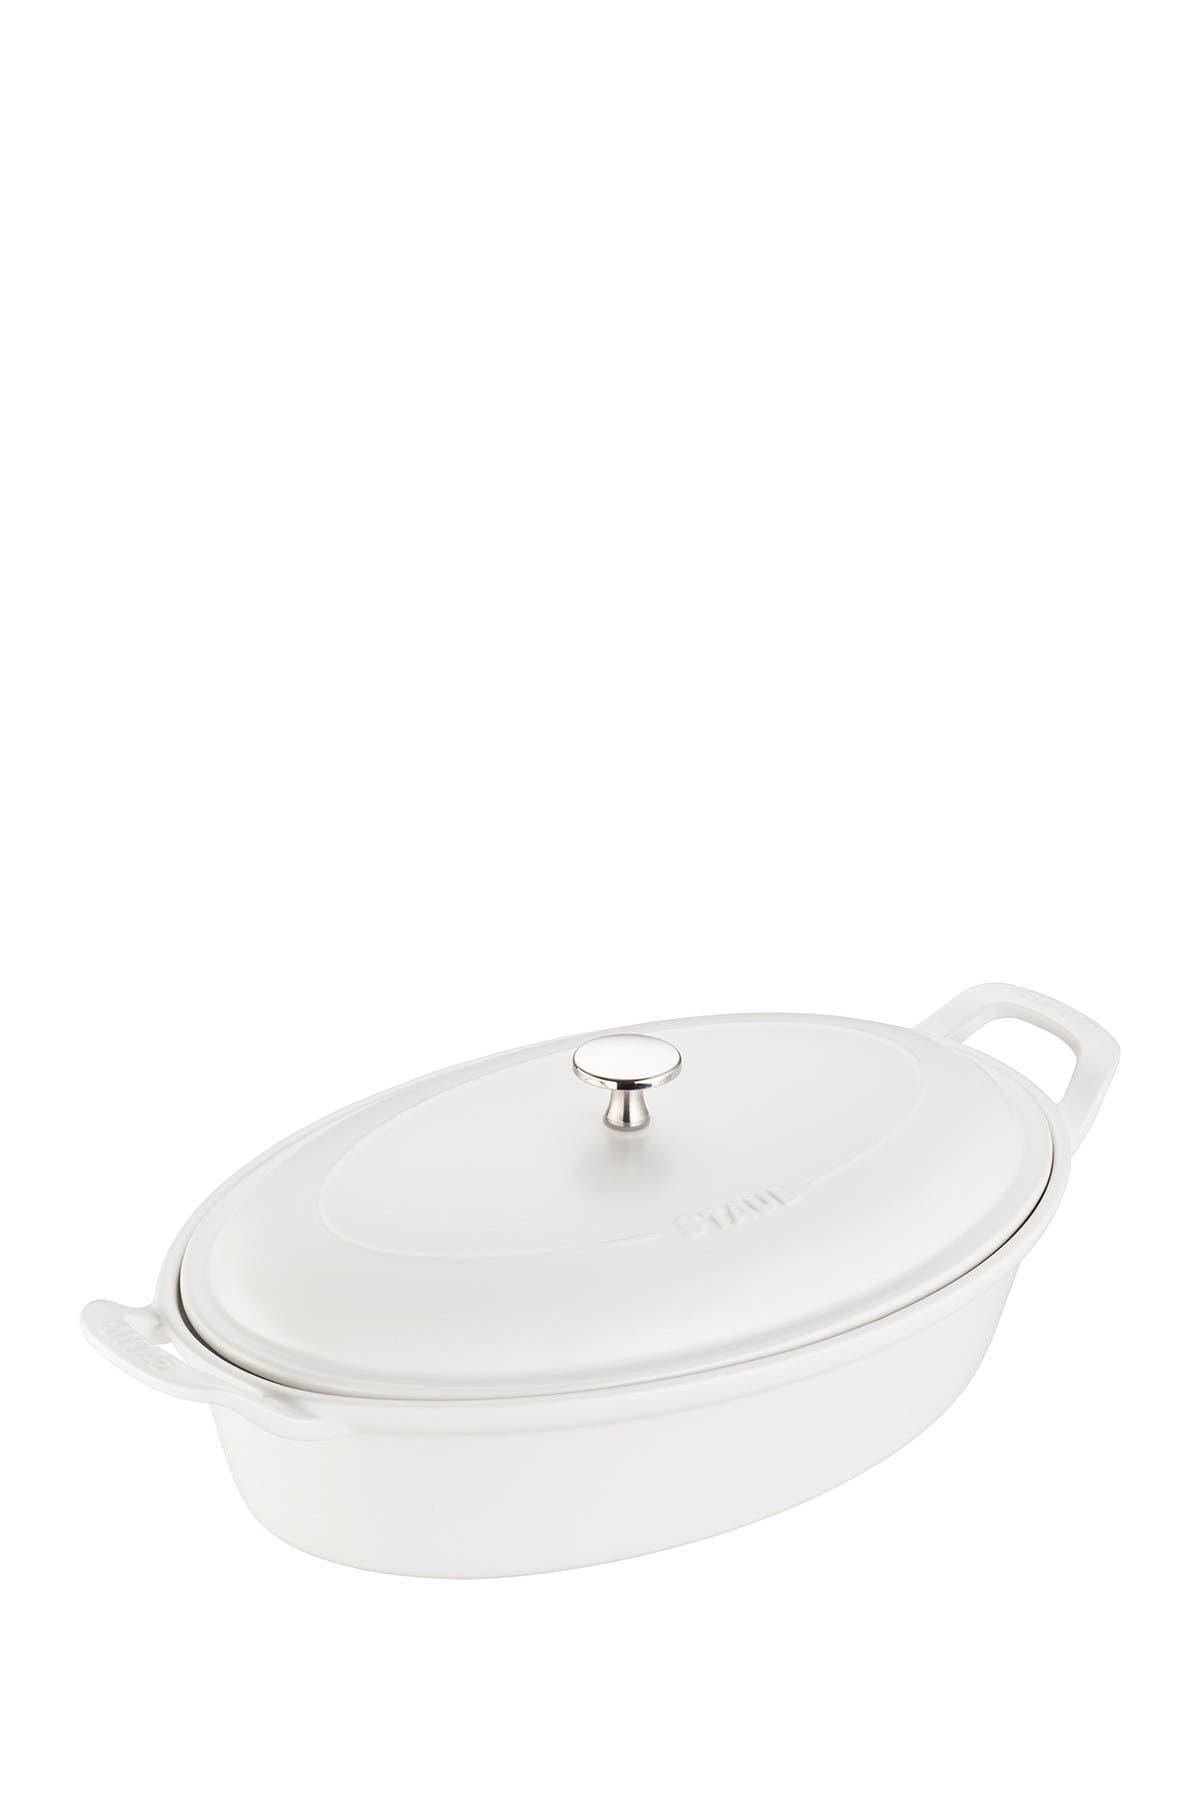 Image of Staub Ceramic 14-inch Oval Covered Baking Dish - Matte White